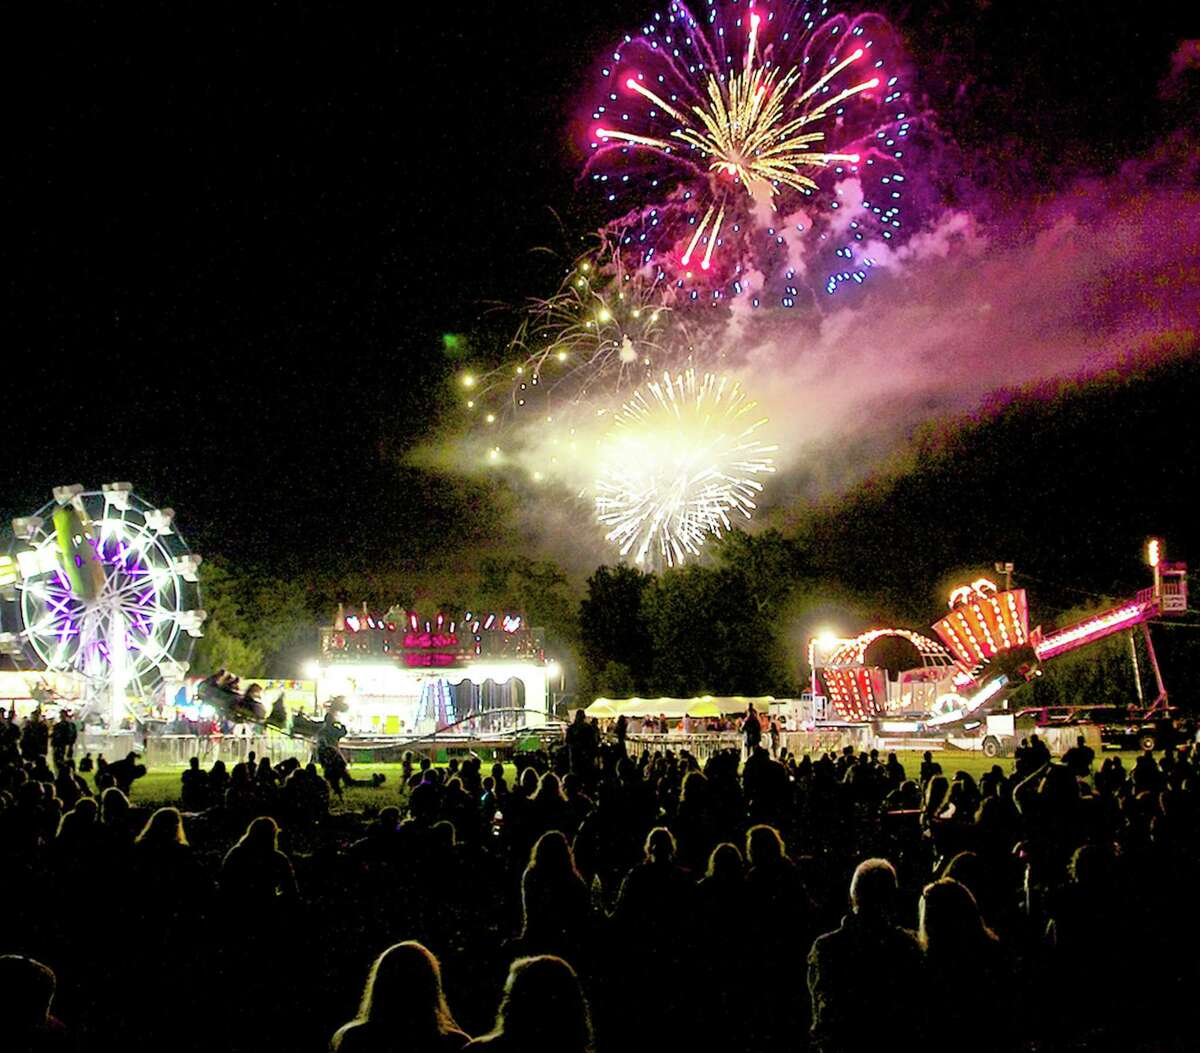 New Milford will on July 6 recognize the Fourth of July holiday with activities on the Village Green and fireworks in the evening. In addition, the Lions Club will offer a carnival at Young's Field July 5-6.